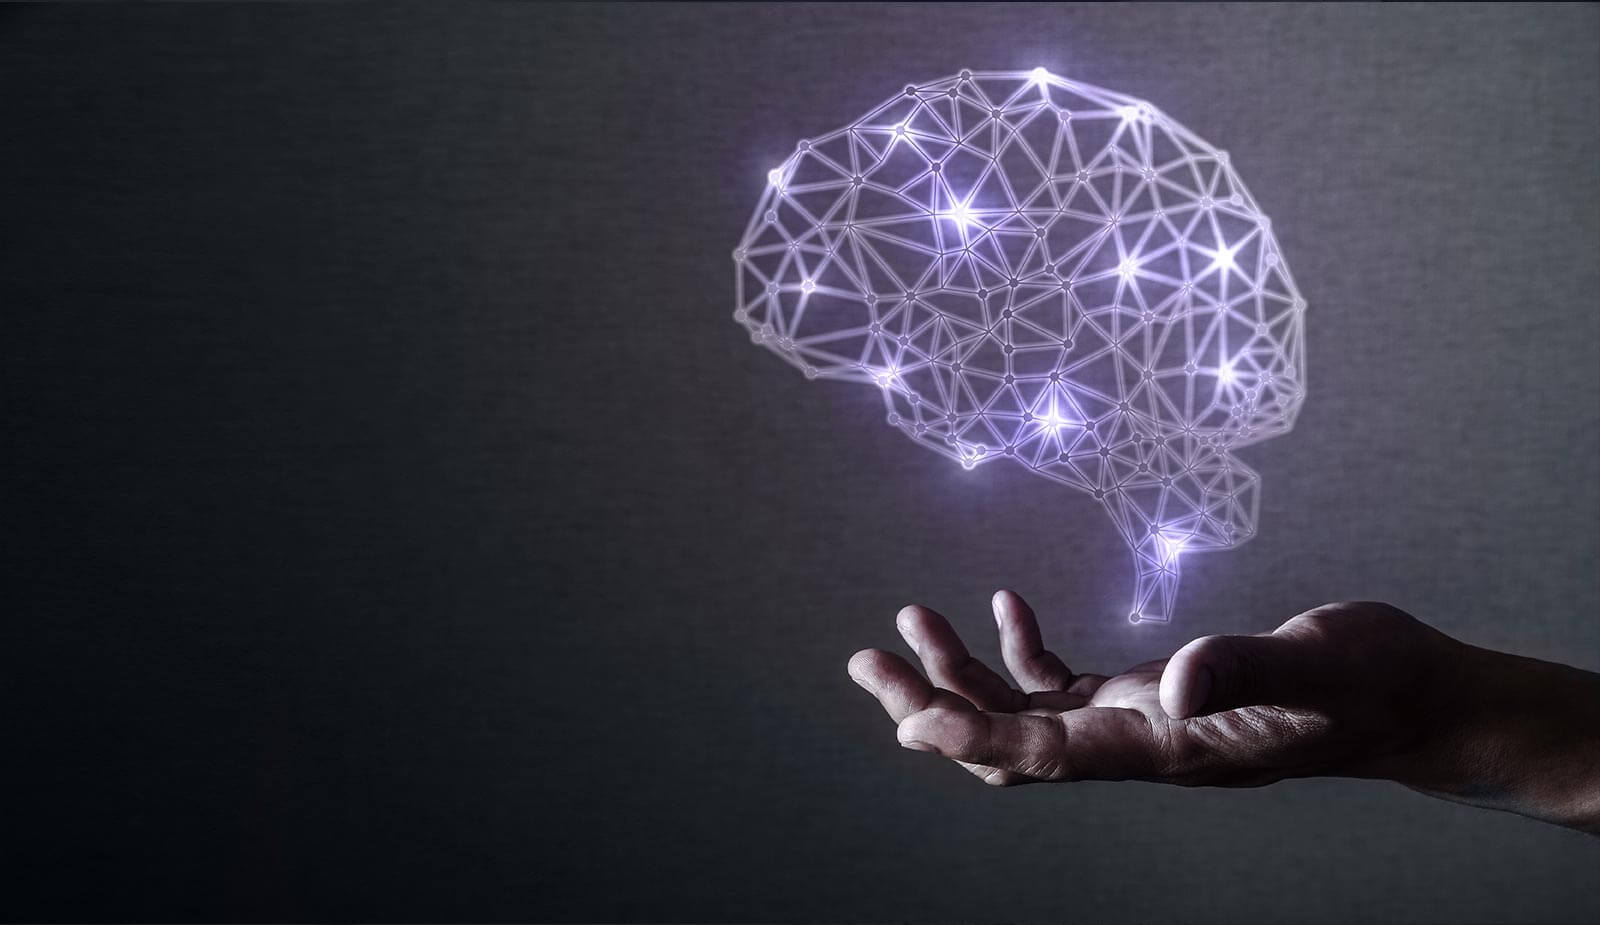 Are You Ready to Re-train Your Brain?